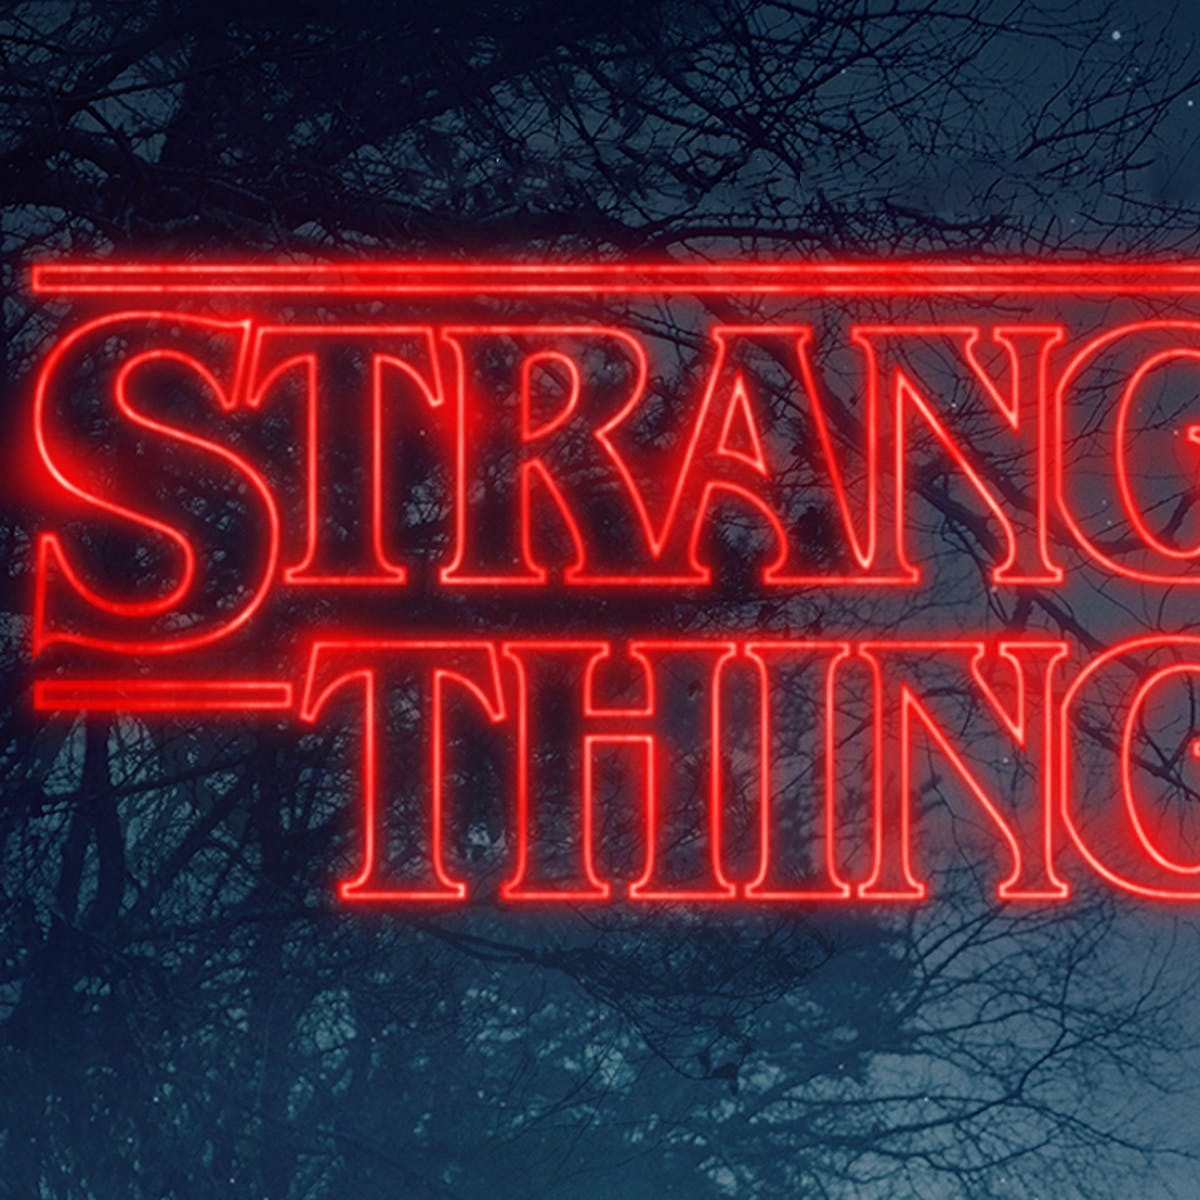 Netflix's 'Stranger Things' And The Return of An Iconic Sci-Fi Font